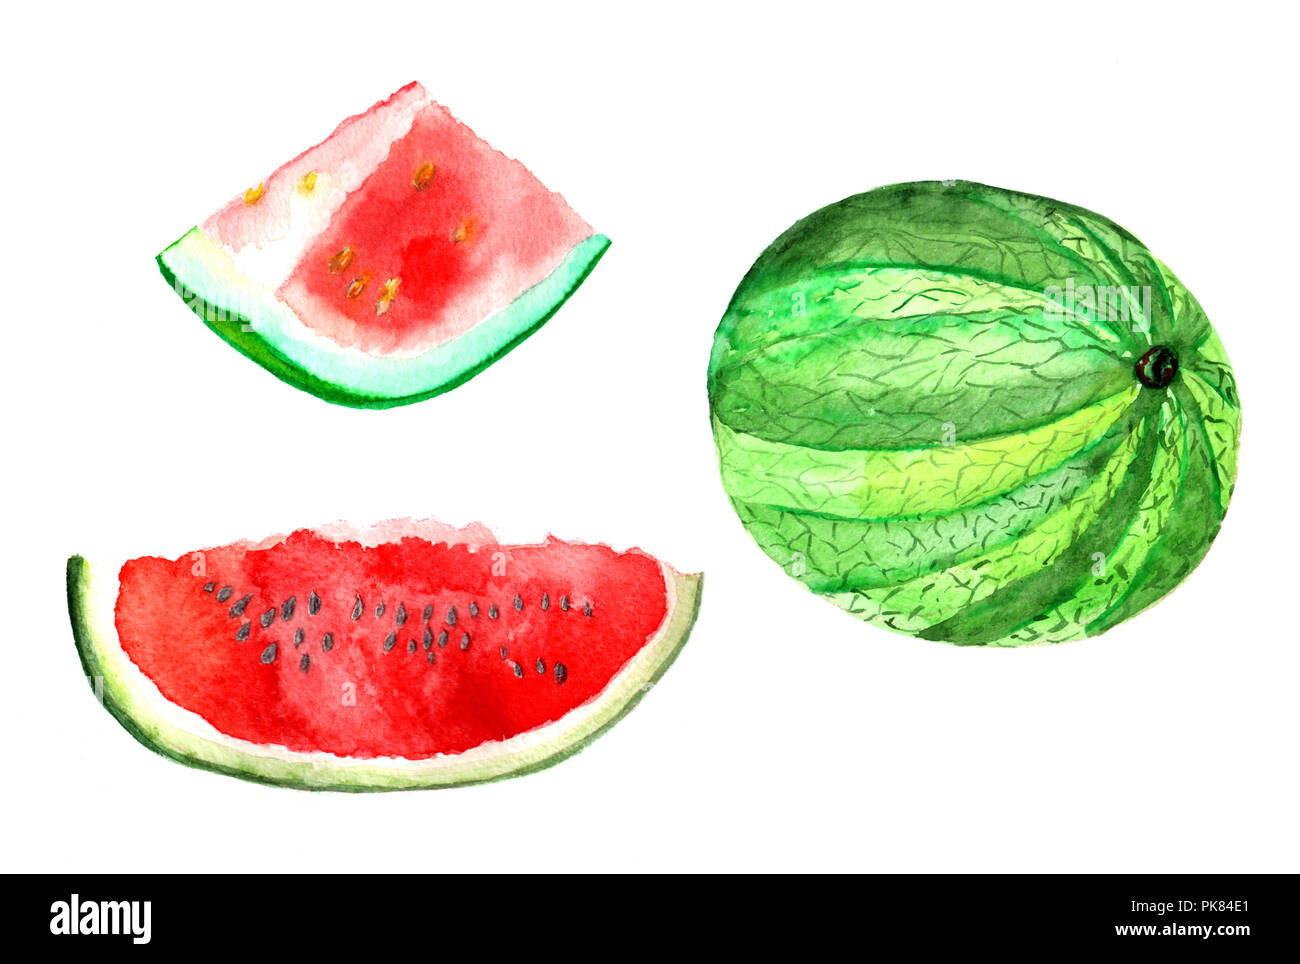 Easy Draw Watermelon Www Topsimages Com